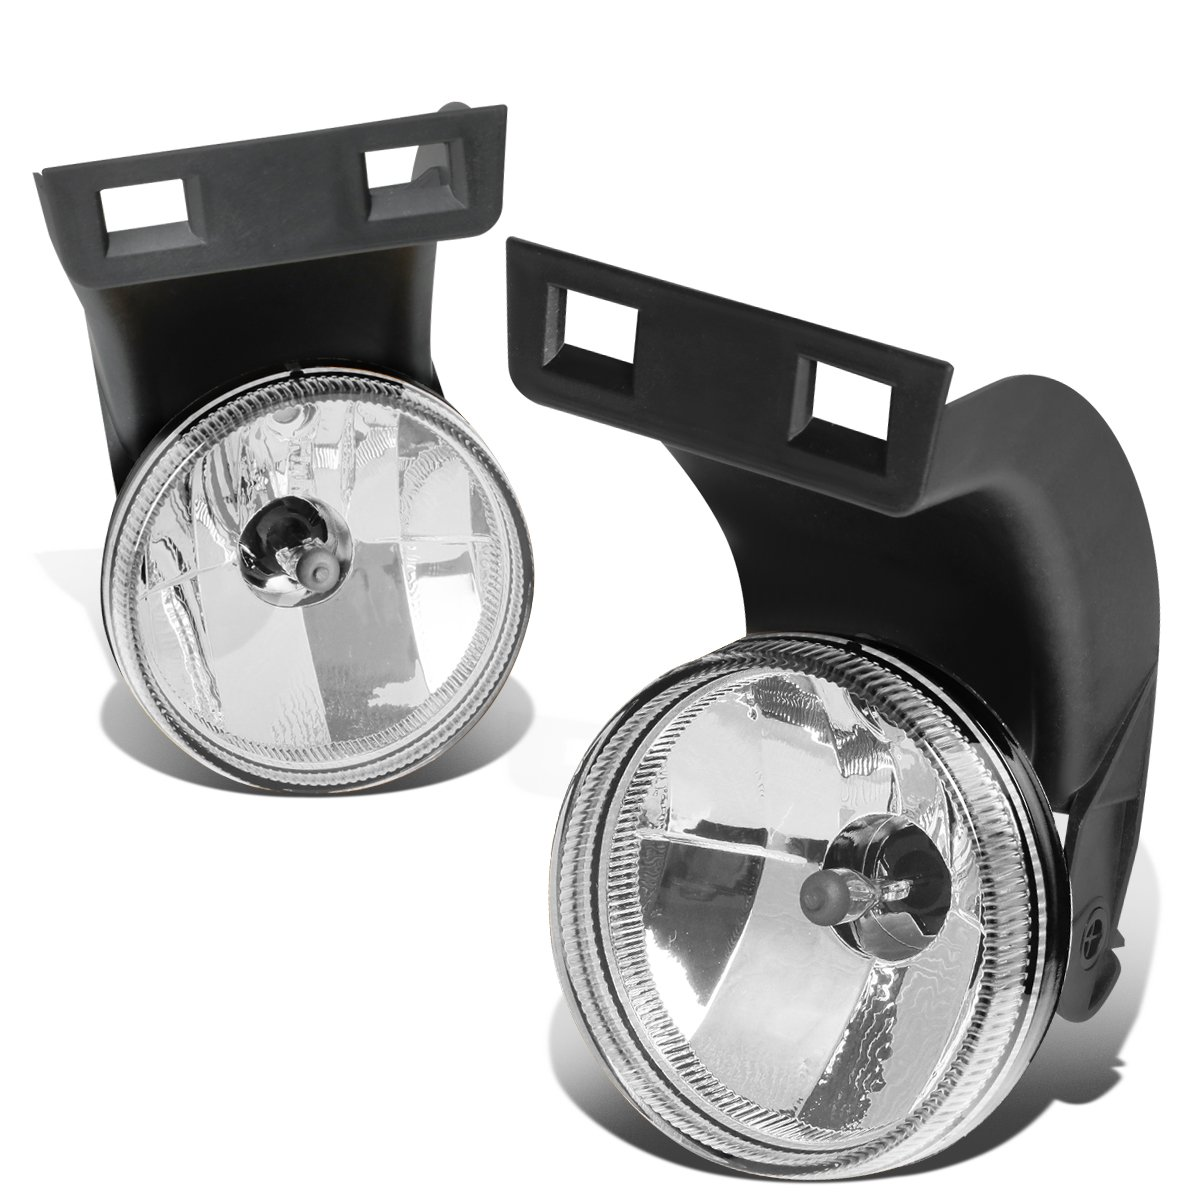 Replacement for 94-98 Ram 1500/2500 / 3500 Pair Clear Lens Front Bumper Driving Fog Light/Lamps (Left+Right)